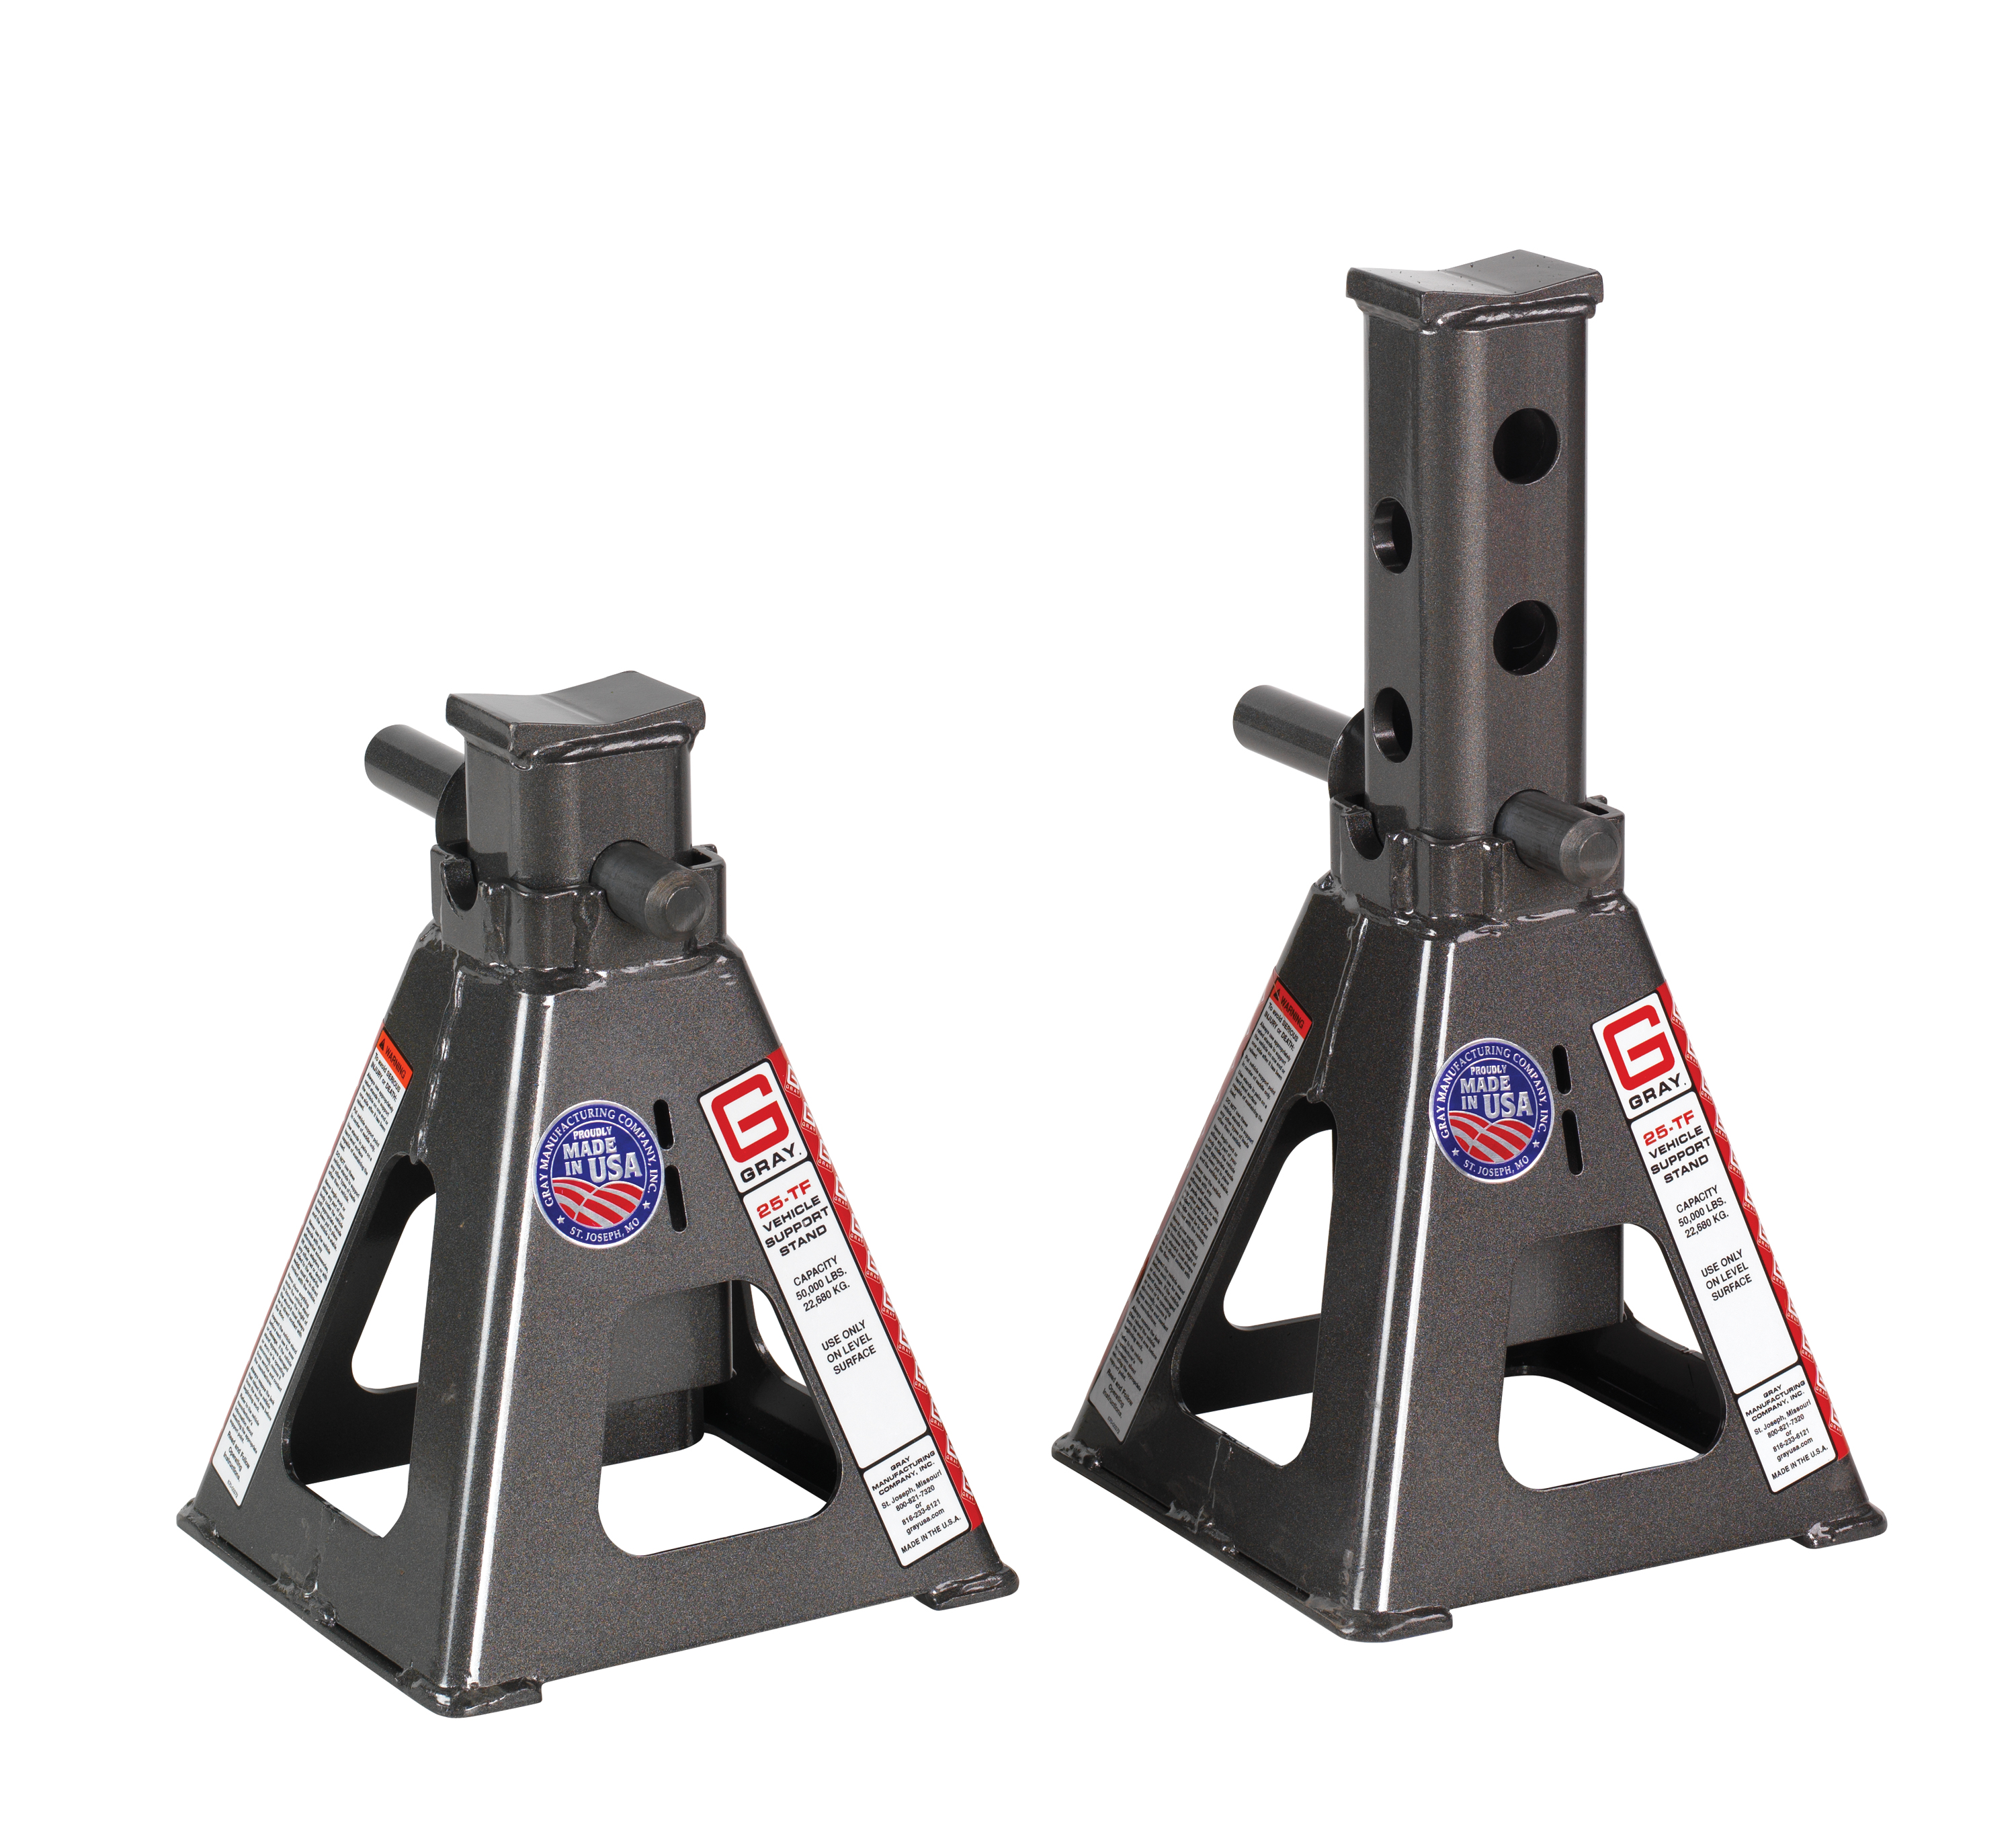 Gray Manufacturing's 25-TF are durable, positive pinning vehicle support stands with a 24,000 lbs. capacity per stand.